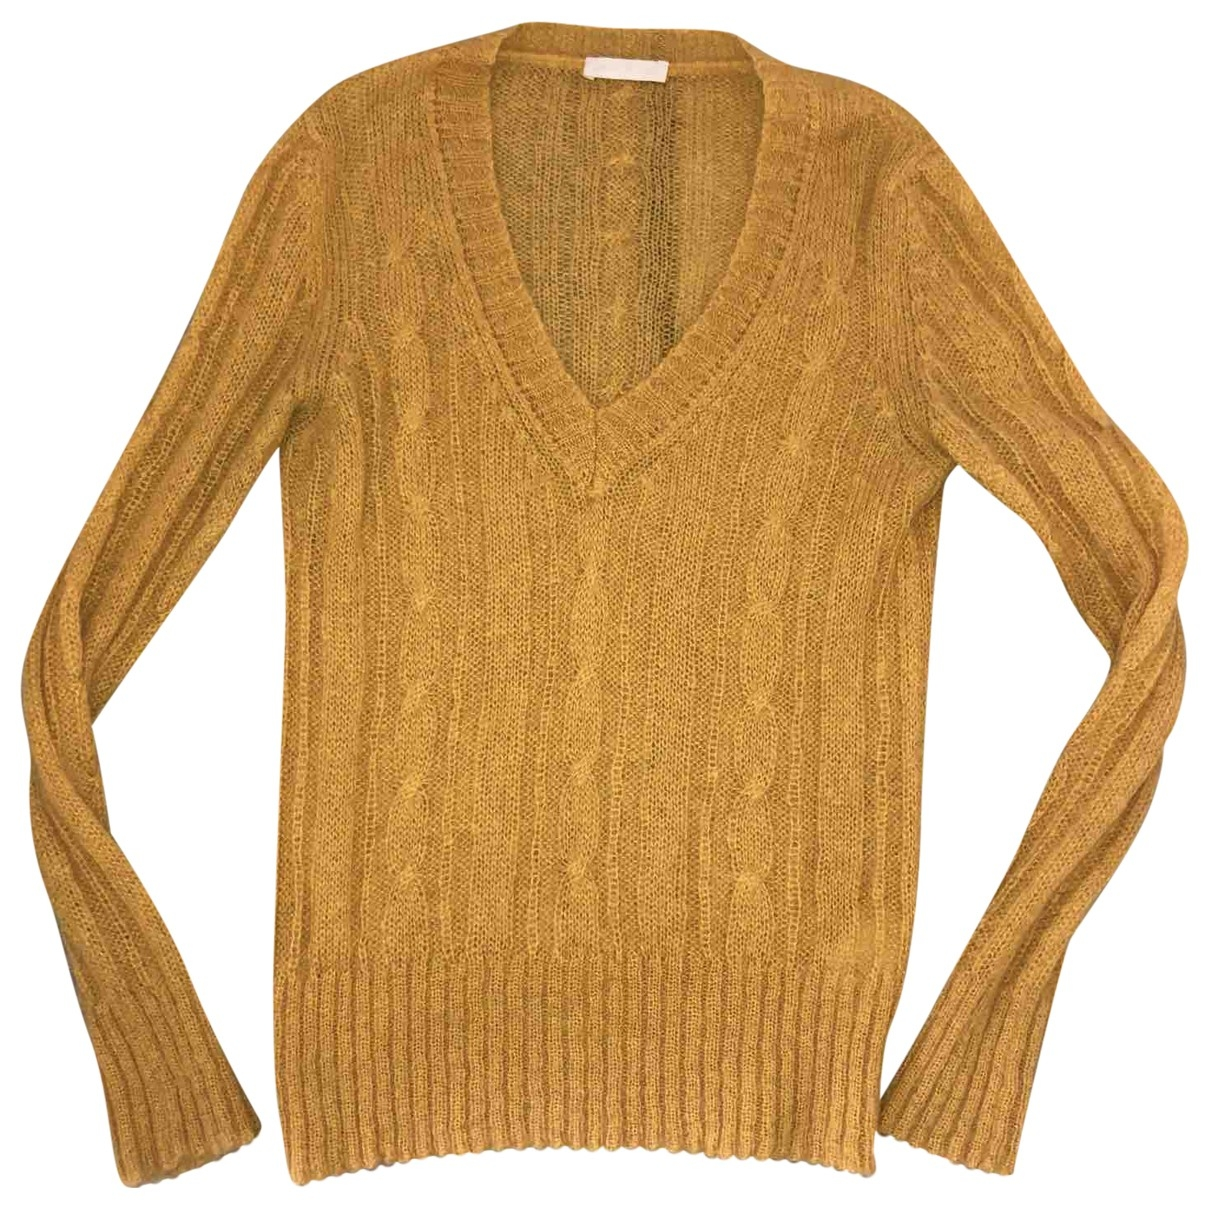 Ermanno Scervino \N Pullover in  Gelb Wolle